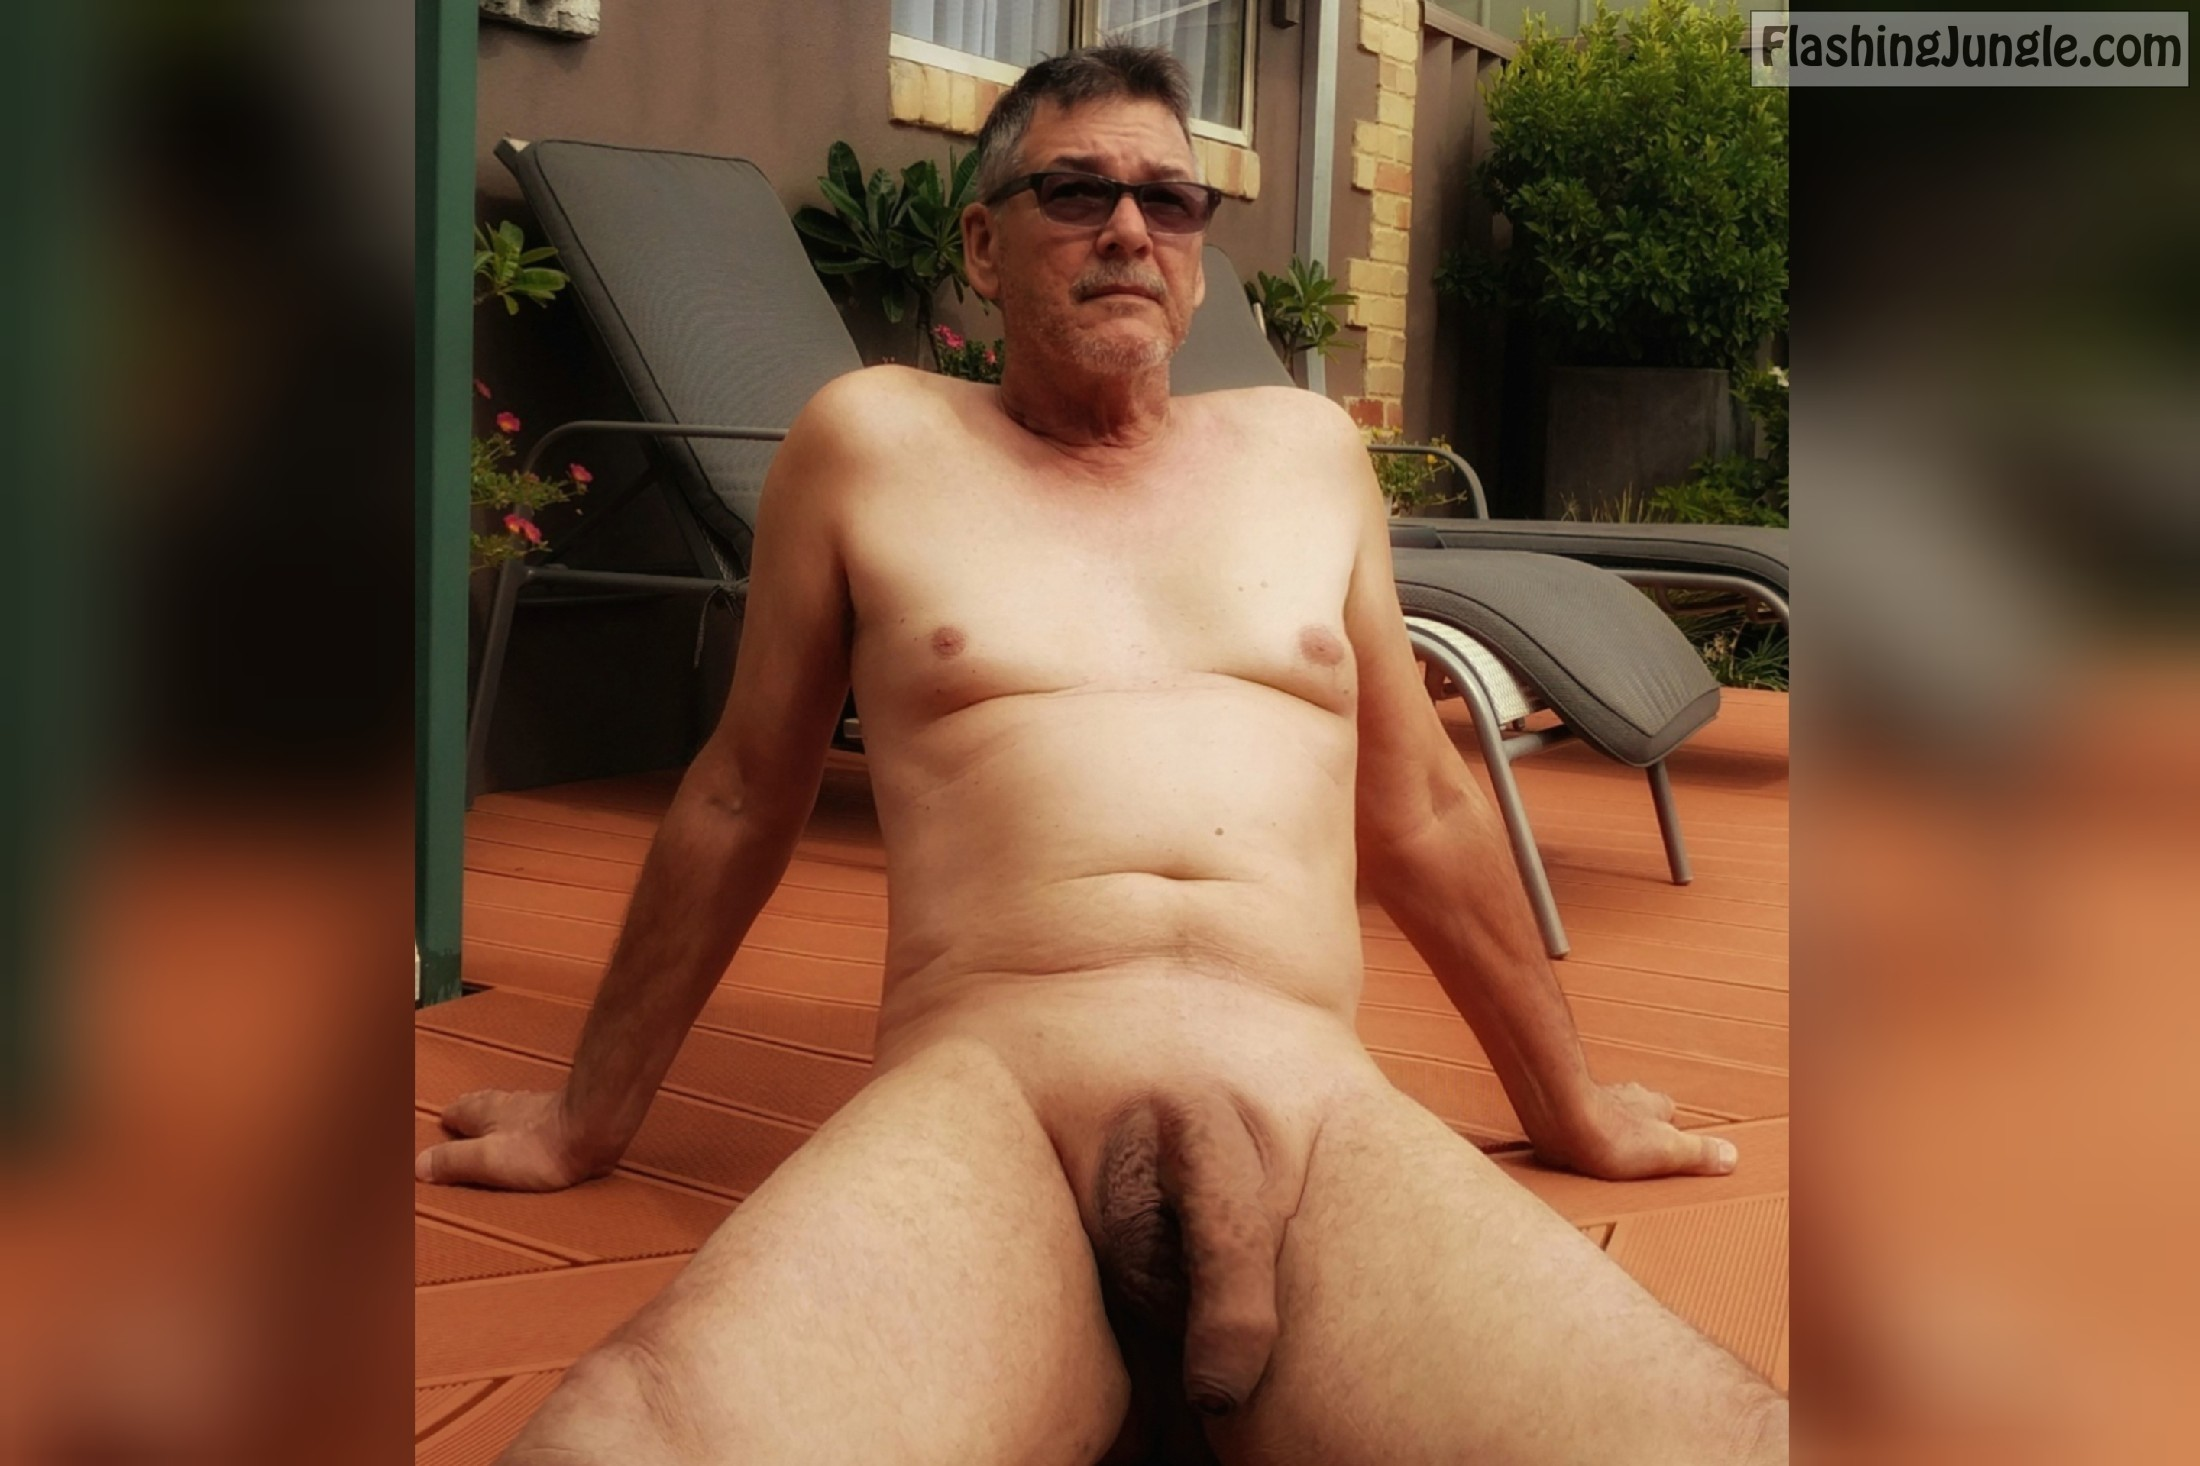 True <strong>nudist</strong> massive cock backyard exposure